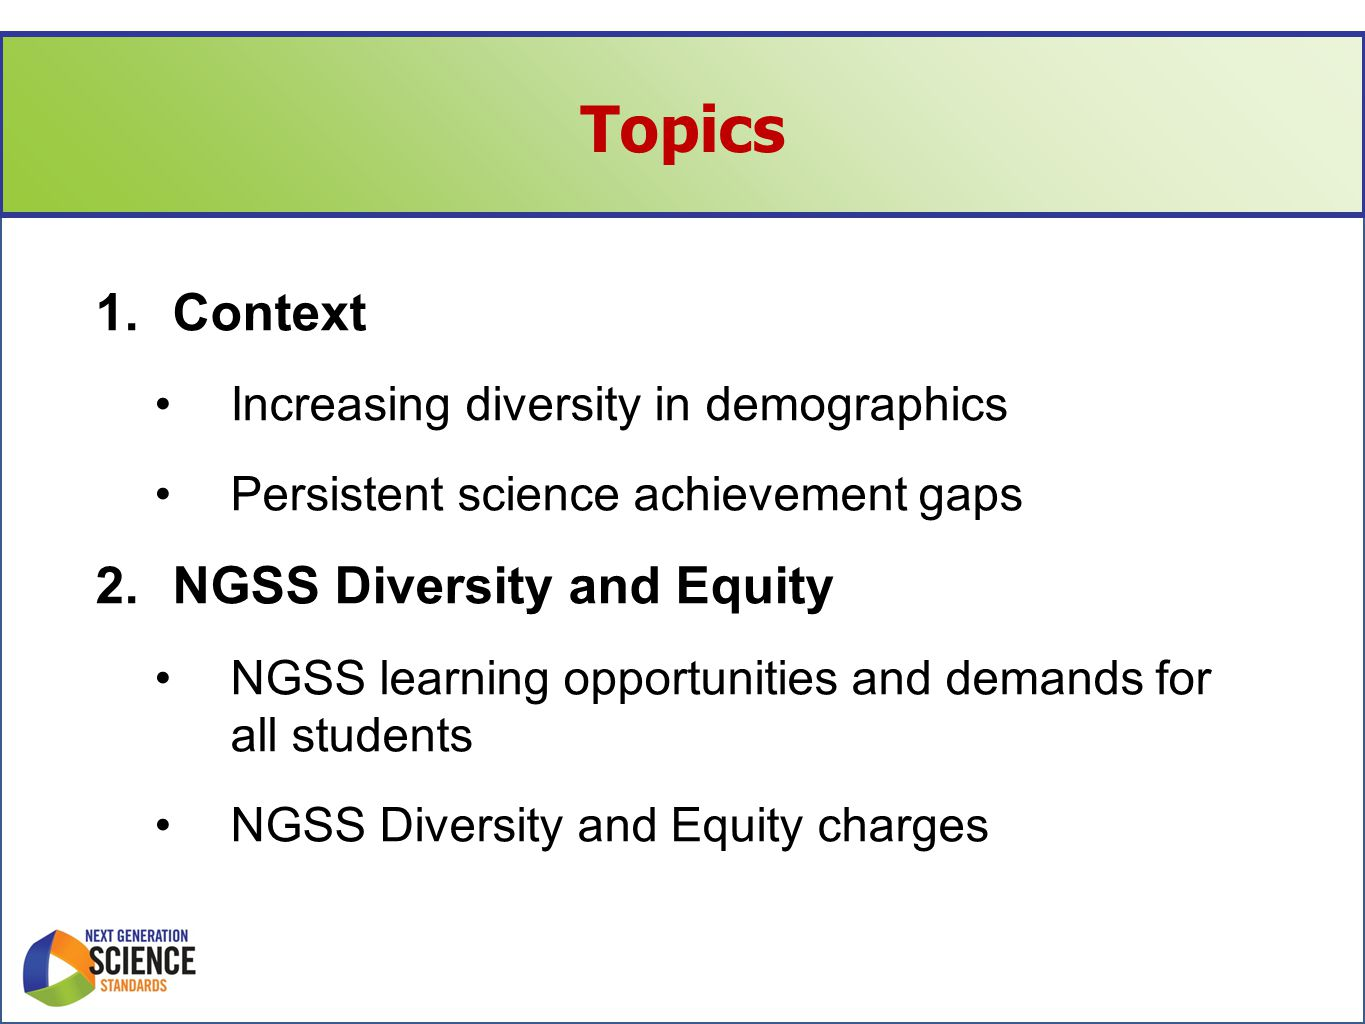 NGSS Diversity and Equity Charges Task 1.Bias Reviews of Standards Task 2.